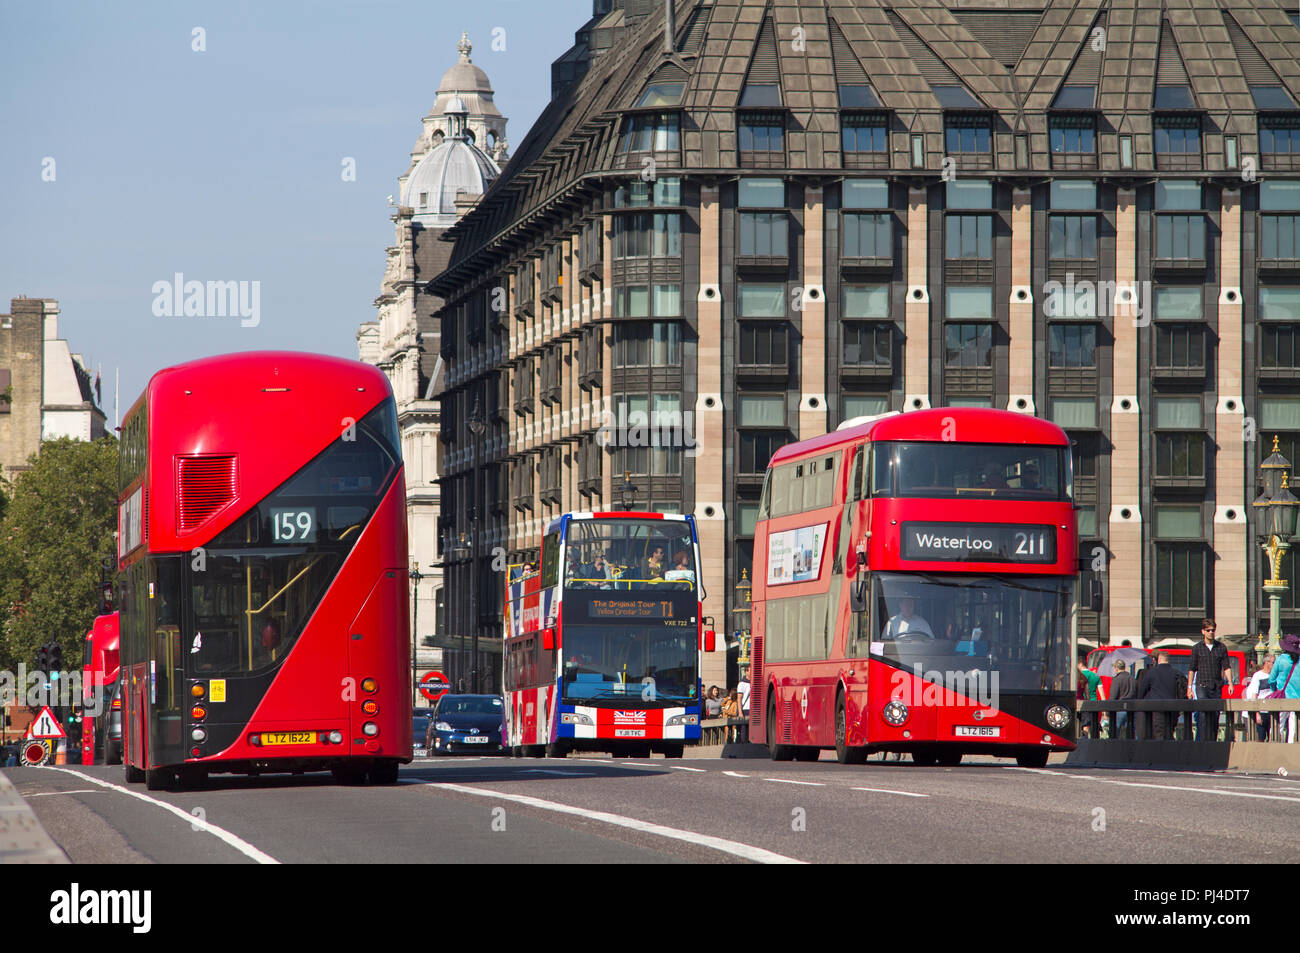 A pair of New Routemaster red double decker London buses passing each other on Westminster Bridge. - Stock Image